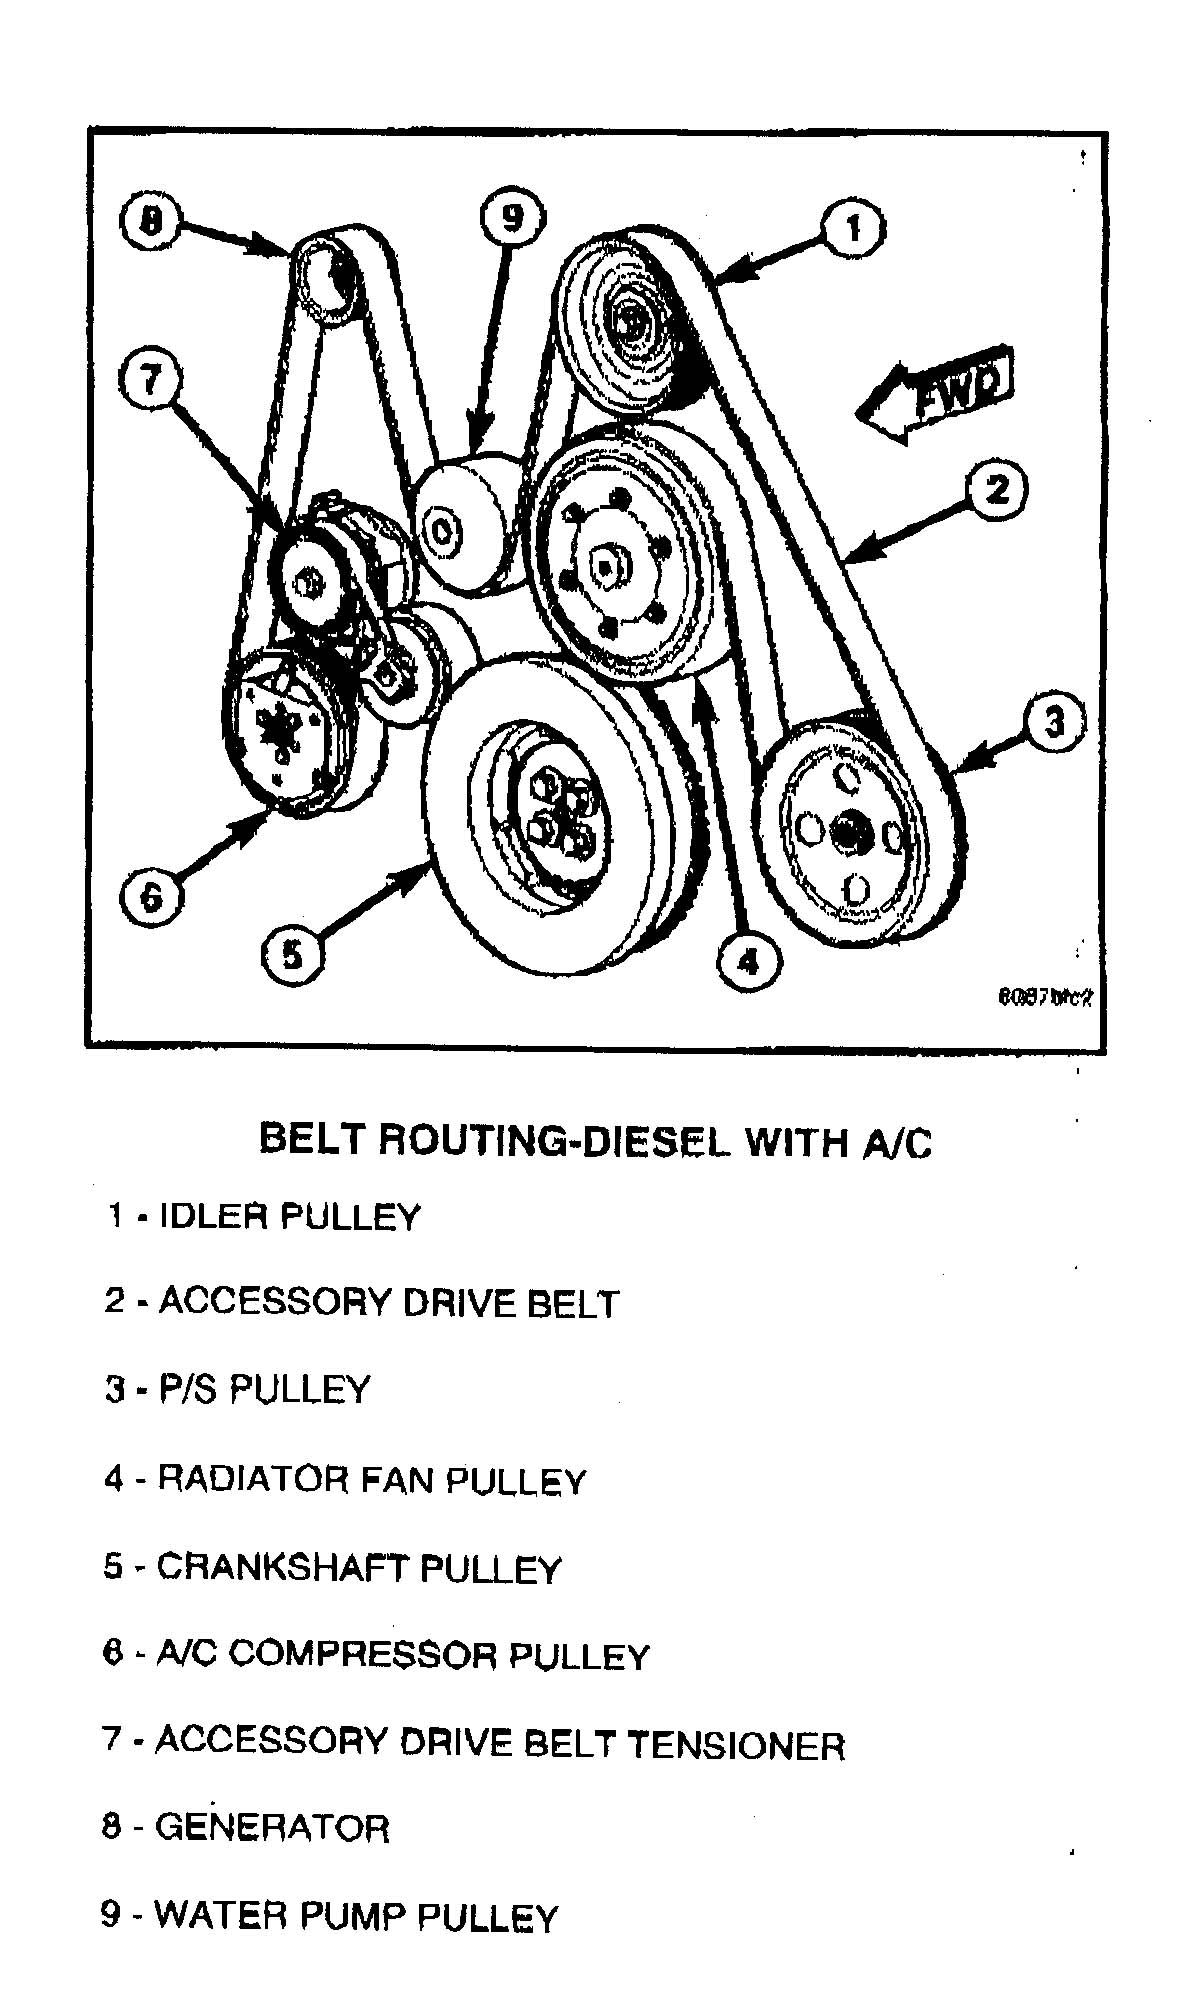 medium resolution of 6 7 belt routing diagram dodge diesel diesel truck resource 2008 ford f 250 6 4 belt diagram